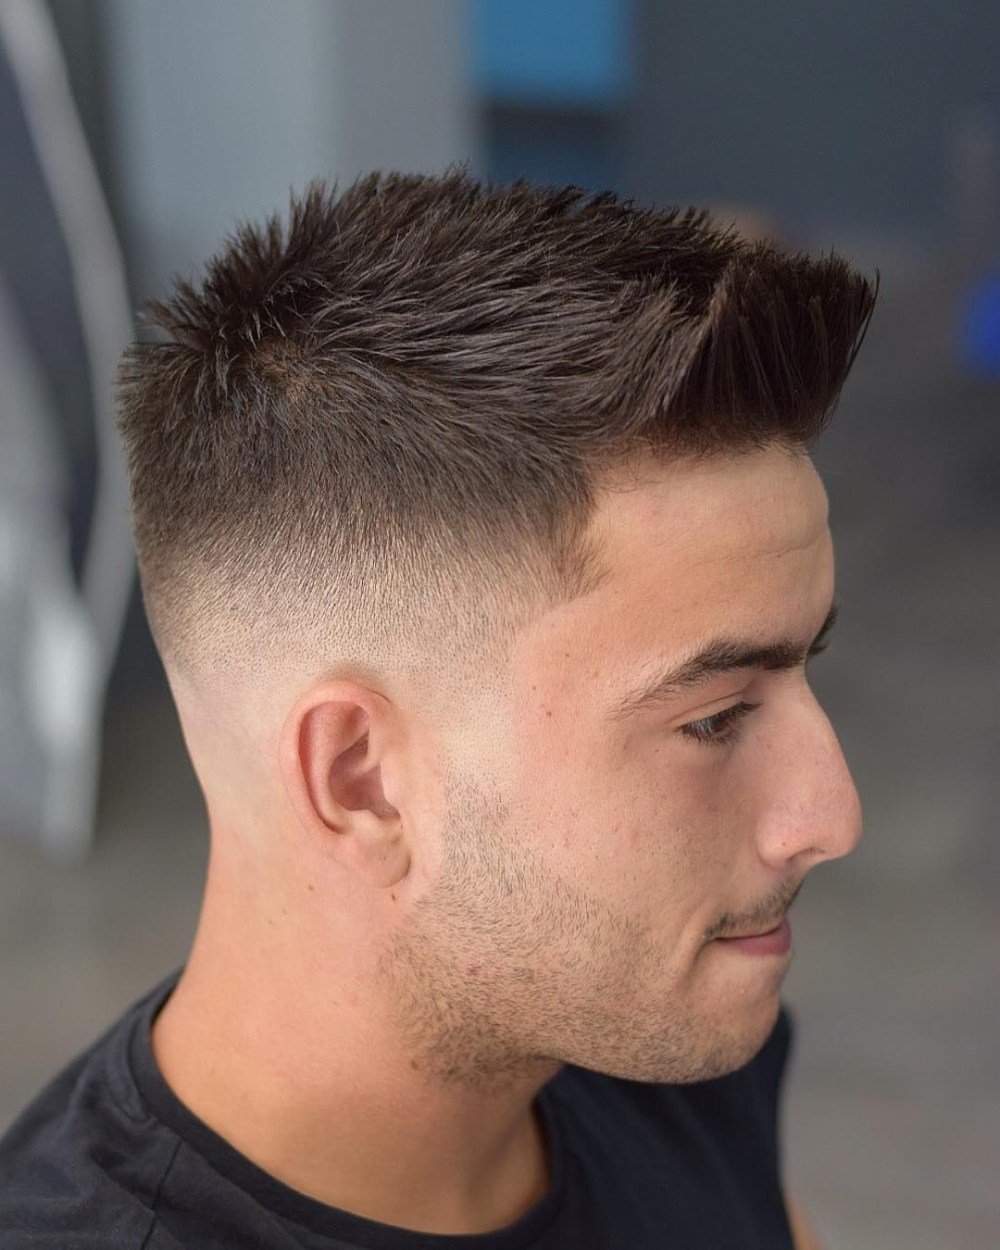 21 Short Fade Haircuts For Guys To Make A Style Statement Haircuts Hairstyles 2020 In 2020 Mens Haircuts Short Short Fade Haircut Mens Hairstyles Short